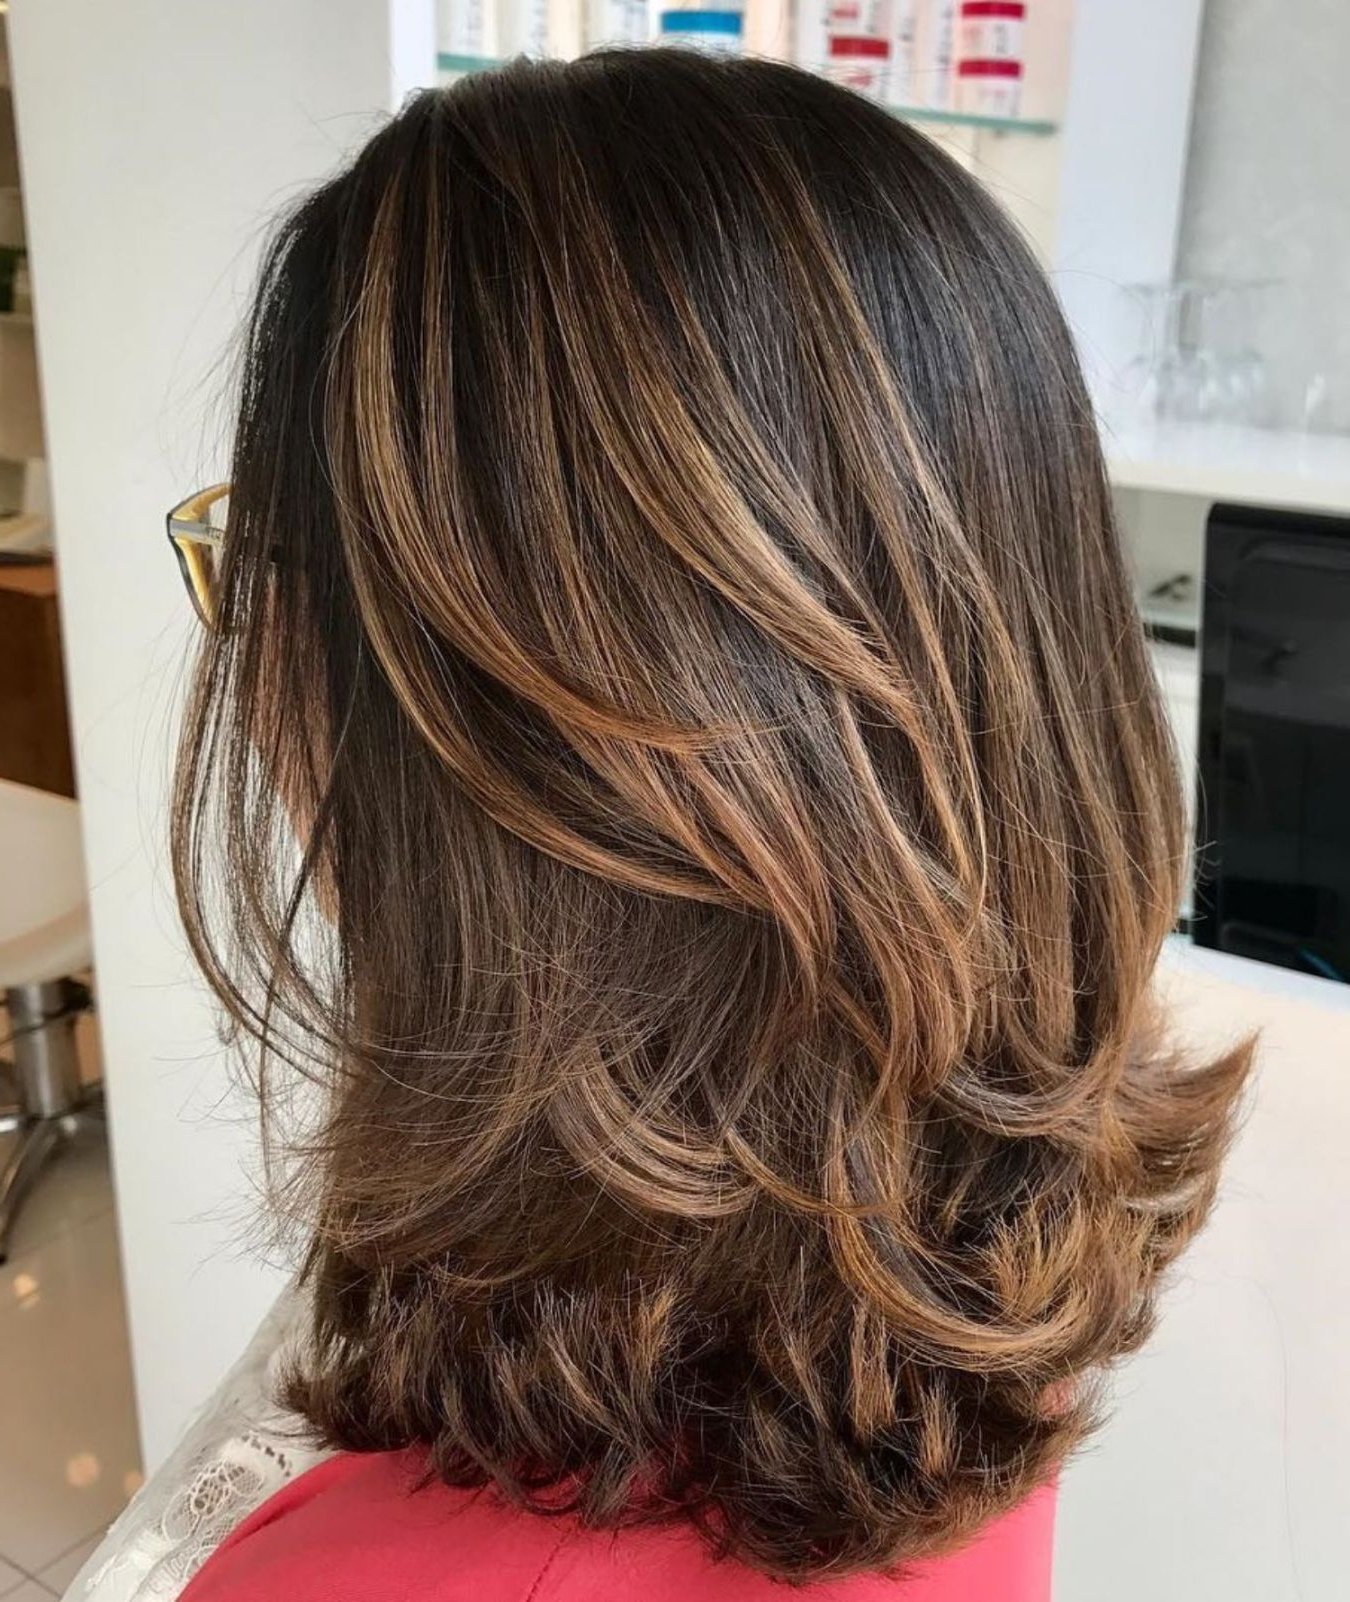 Hairstyles Pertaining To Most Current Swoopy Layers Hairstyles For Mid Length Hair (View 6 of 20)